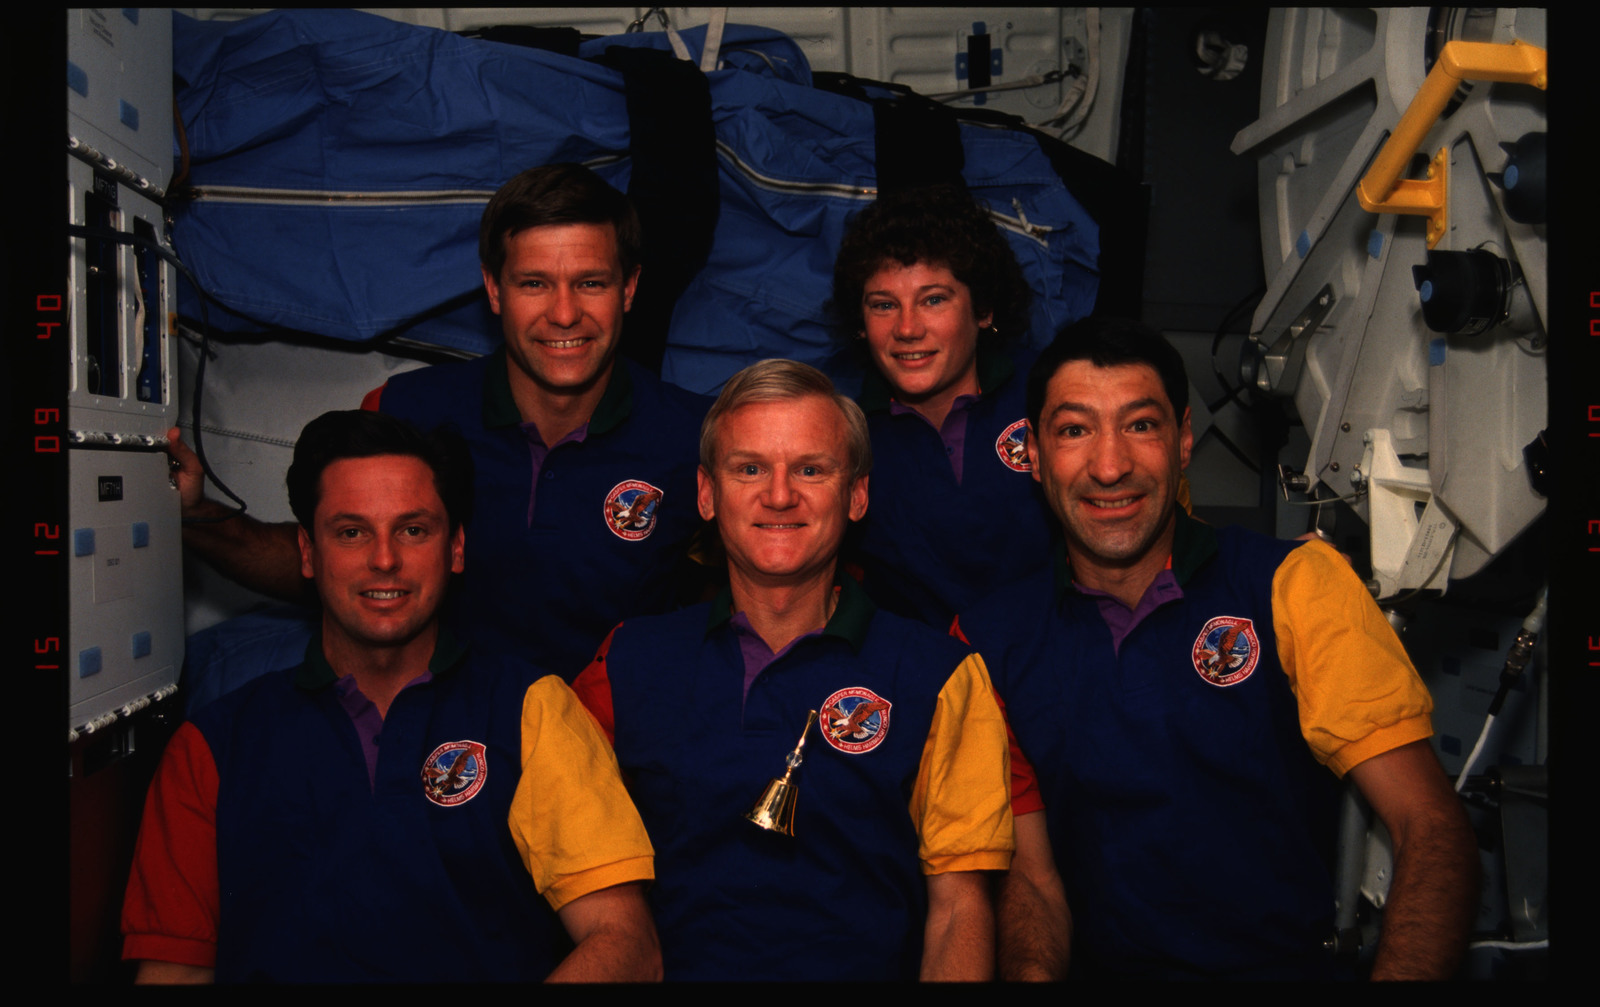 STS054-02-007 - STS-054 - In orbit crew group portraits.